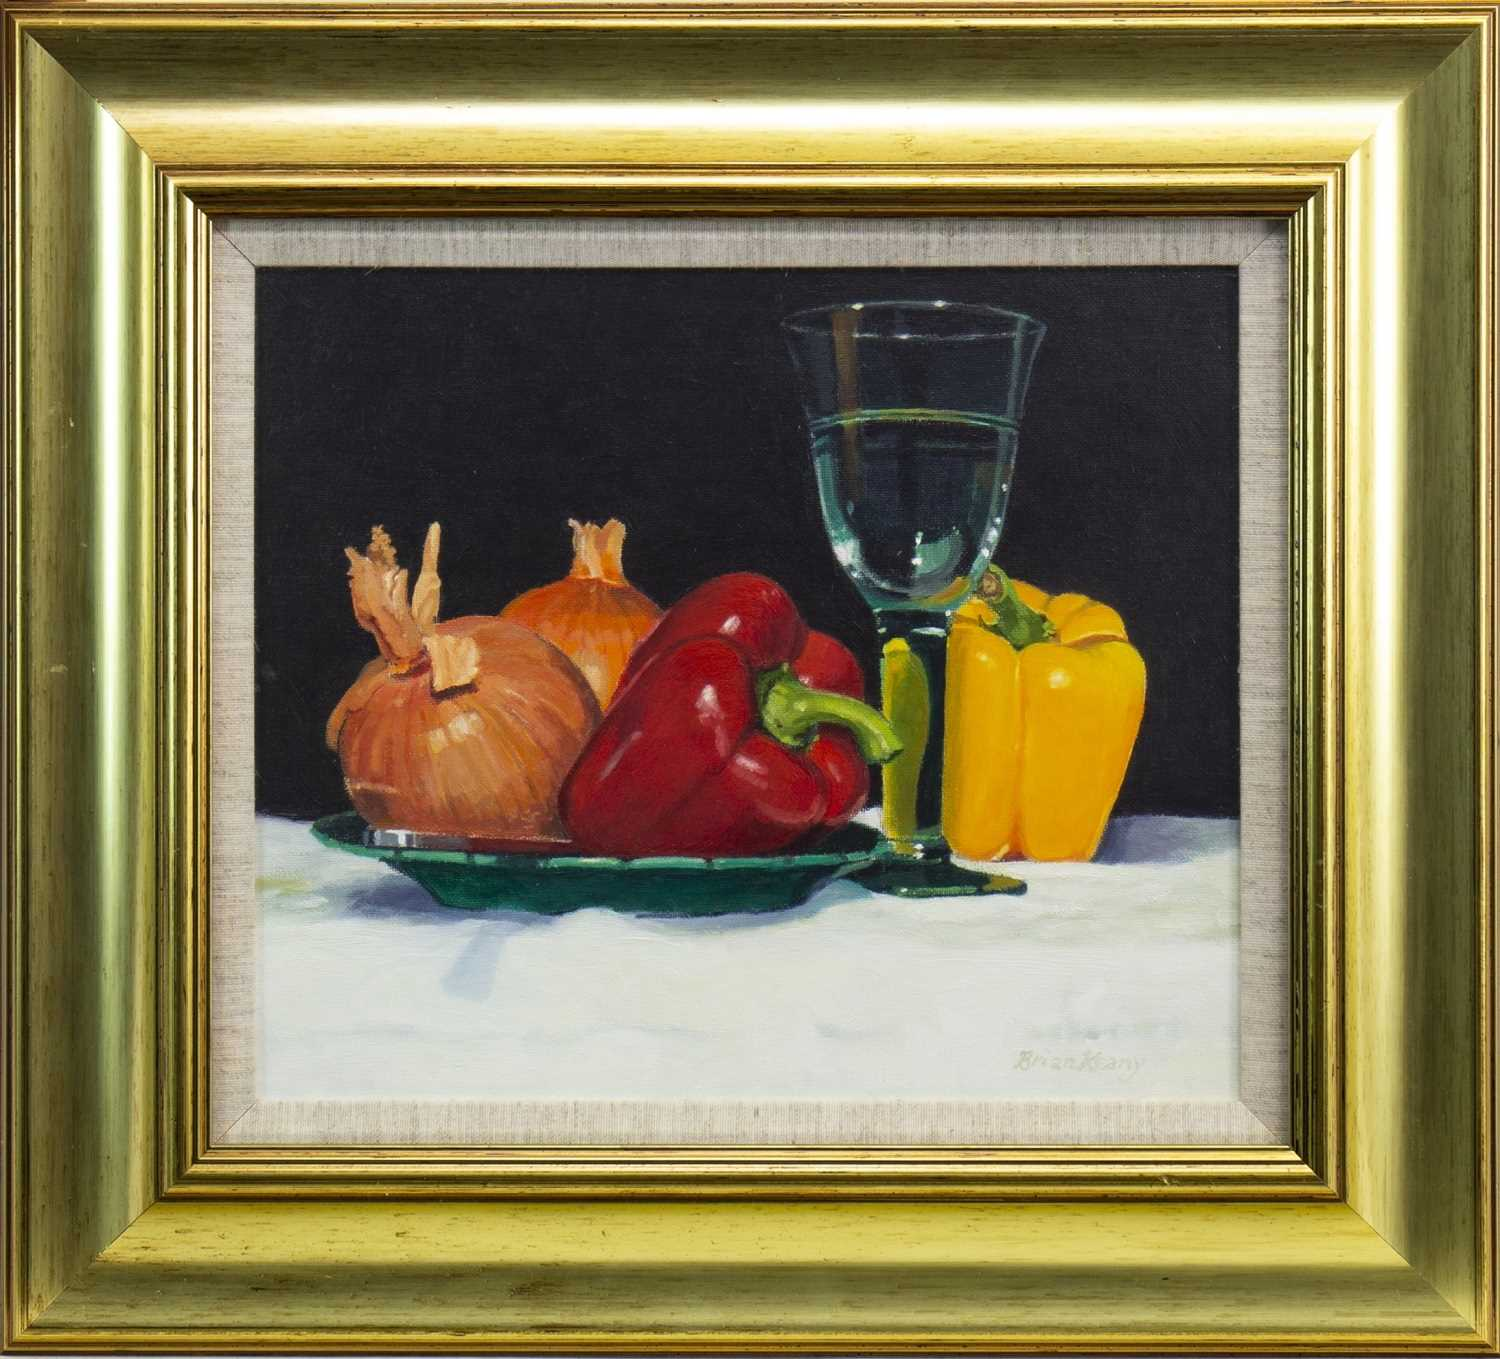 Lot 520-ONIONS, PEPPERS AND GLASS, AN OIL BY BRIAN KEANY